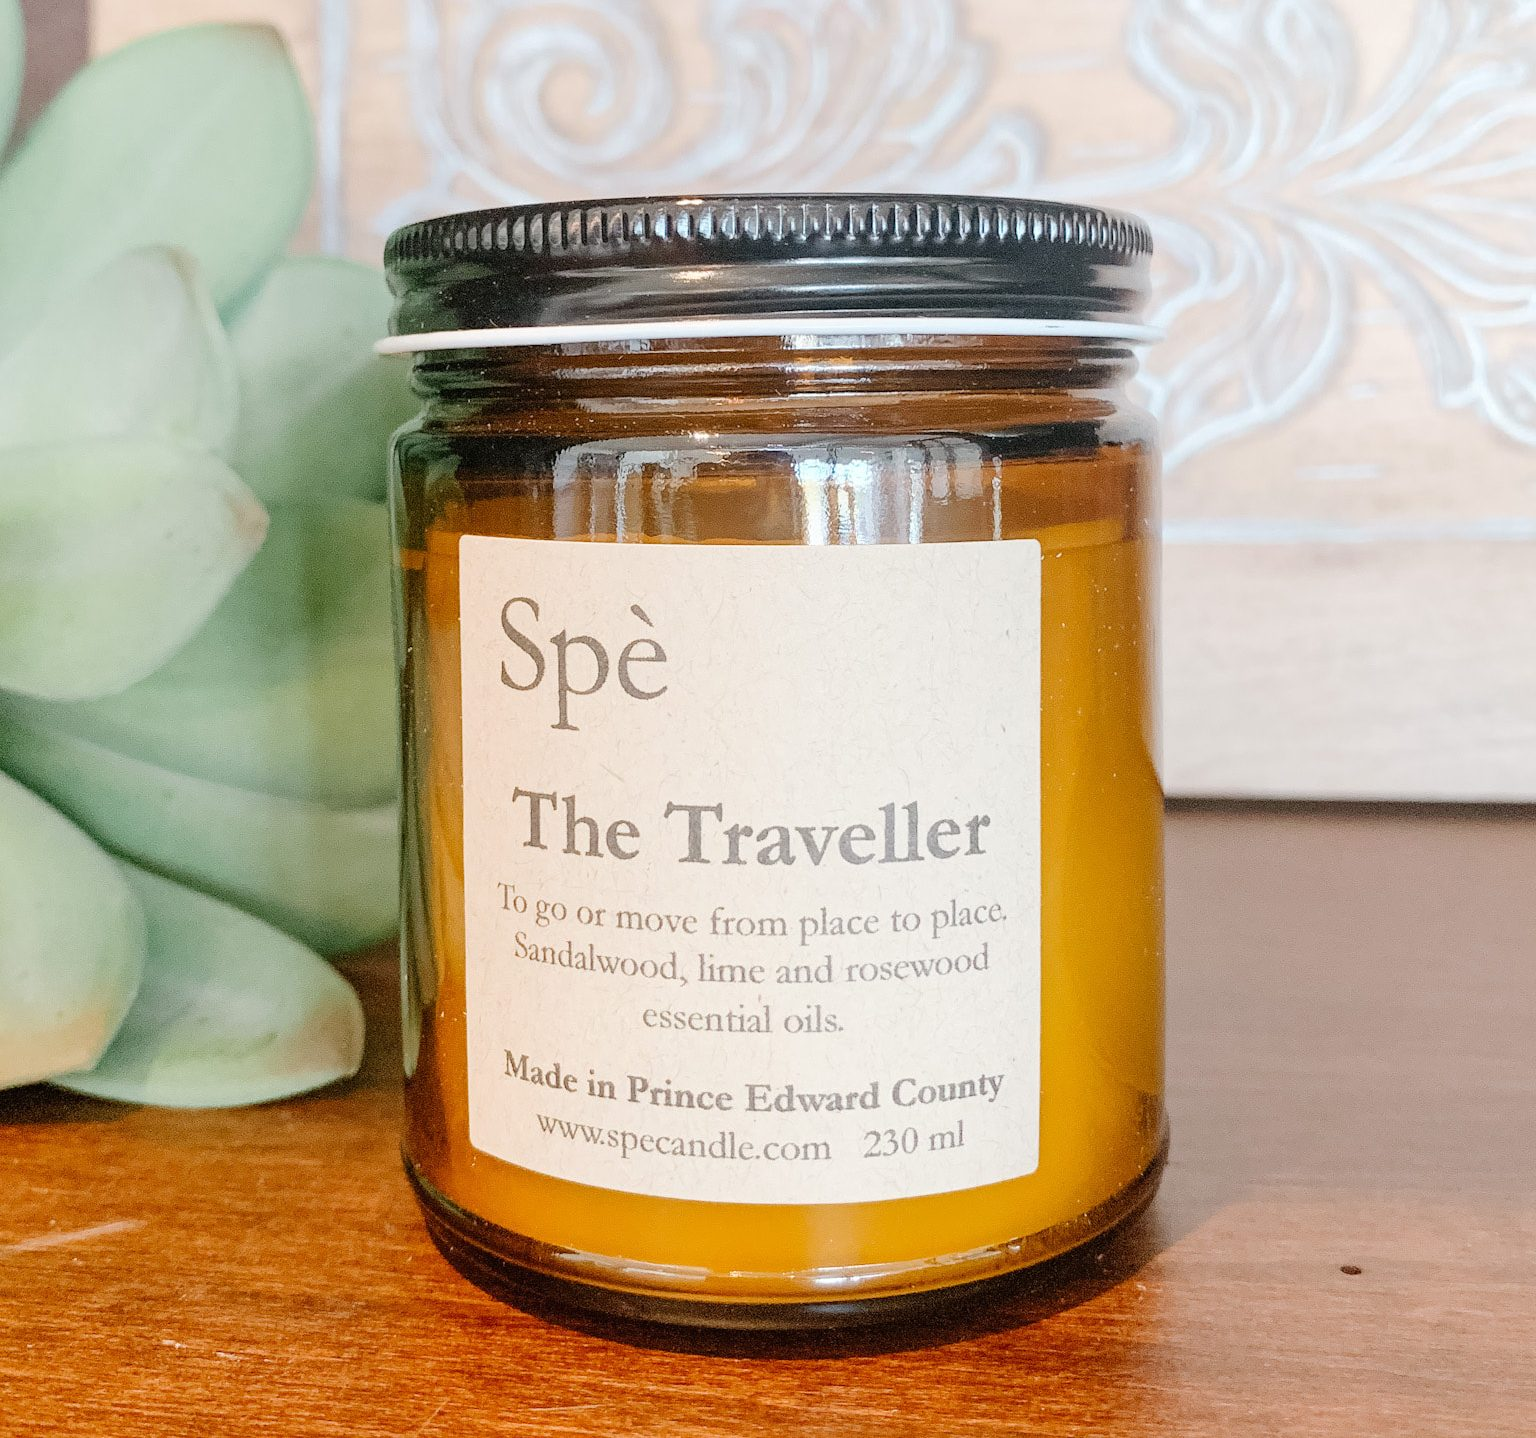 Summer candle, pine, spruce, violet scent, travel candle, locally made candle